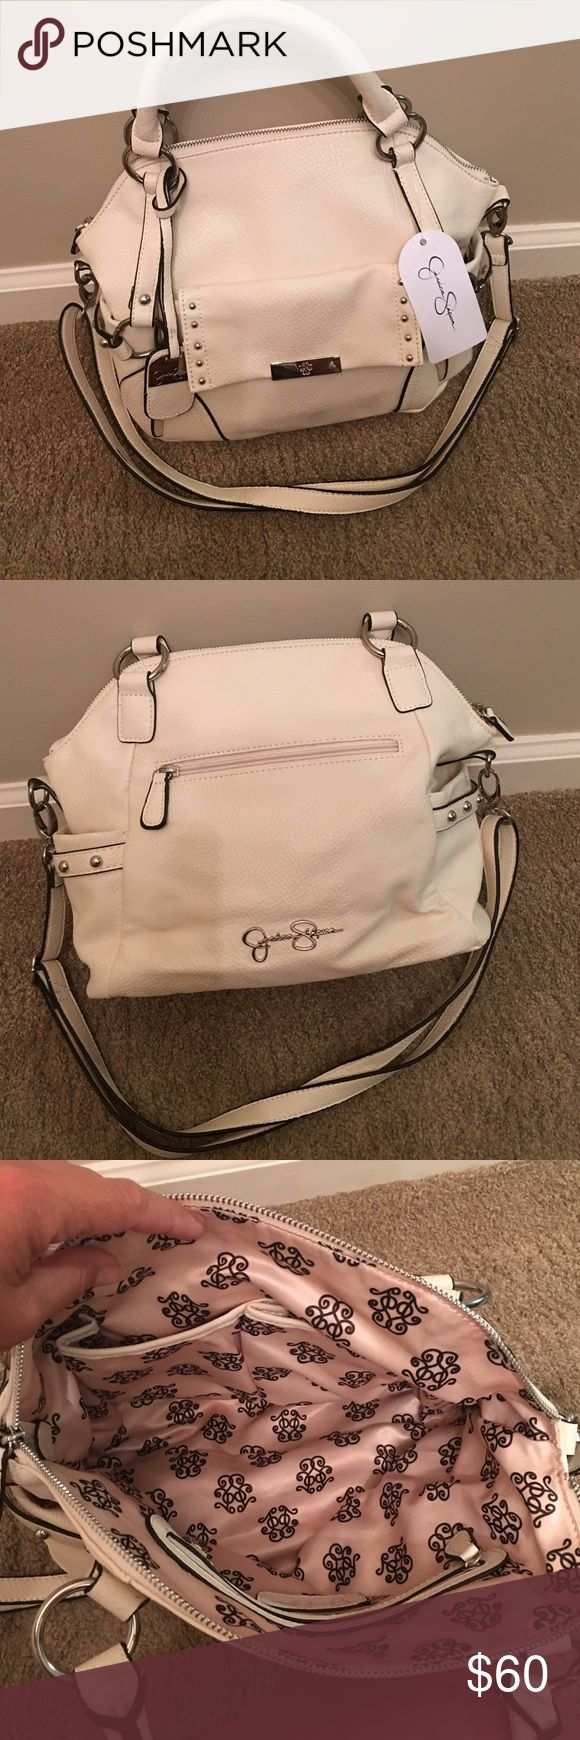 Jessica Simpson purse Cream in color, 4 pockets on outside, 3 inside. Jessica Simpson Bags Shoulder Bags